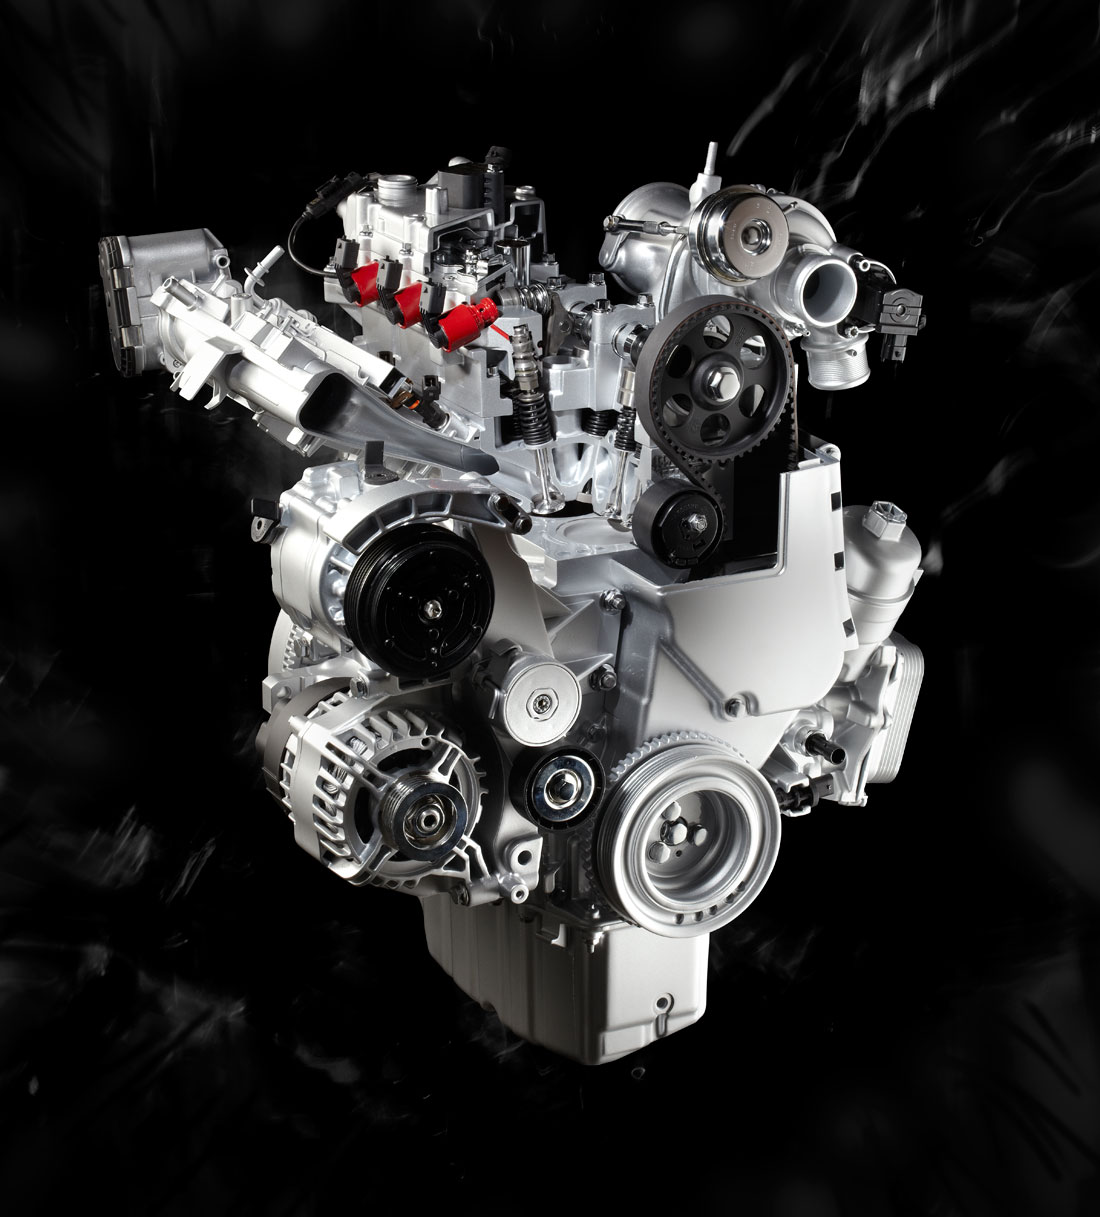 2010 Alfa Romeo MiTo 1.4 MultiAir engine.